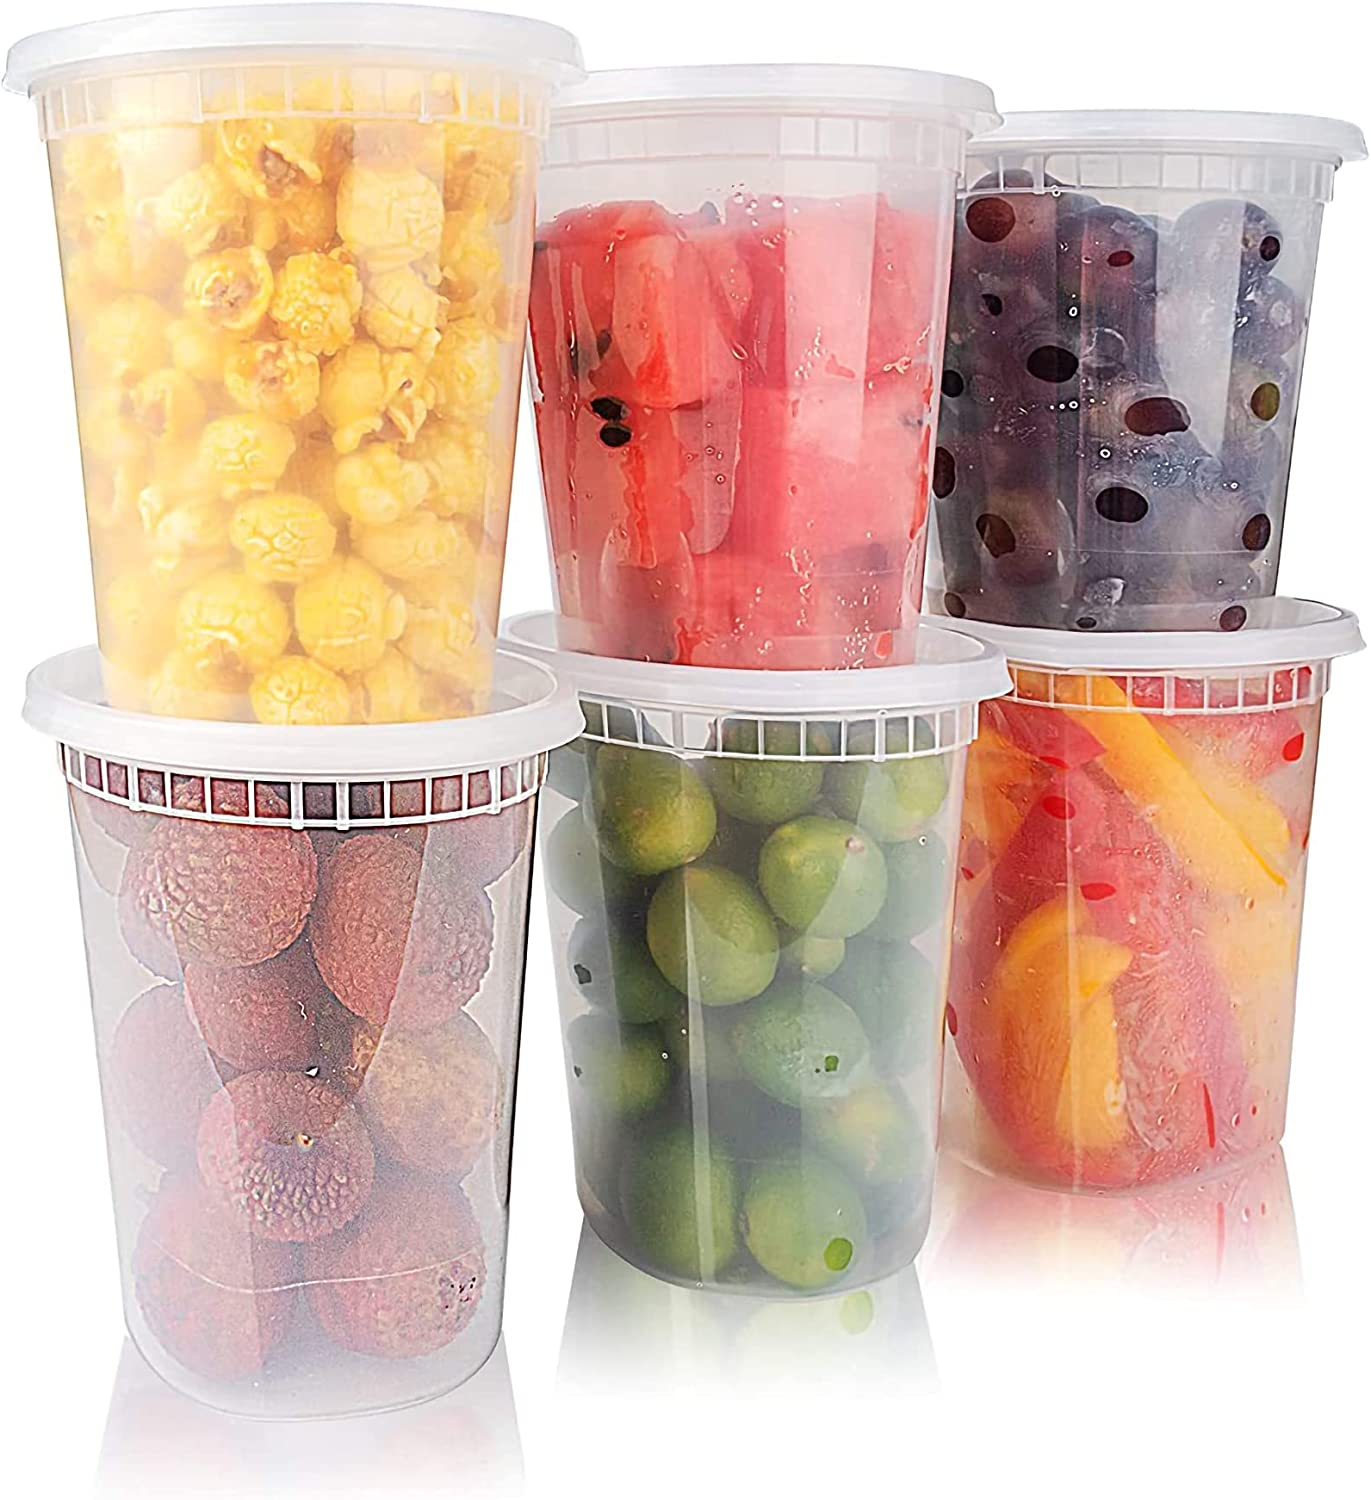 Food Storage Container 48 Set Deli Containers With Lids Reusable Plastic Small Soup Bowls Salad Cups Leakproof Safe BPA Free For freezer Dishwasher Microwave(32 oz)